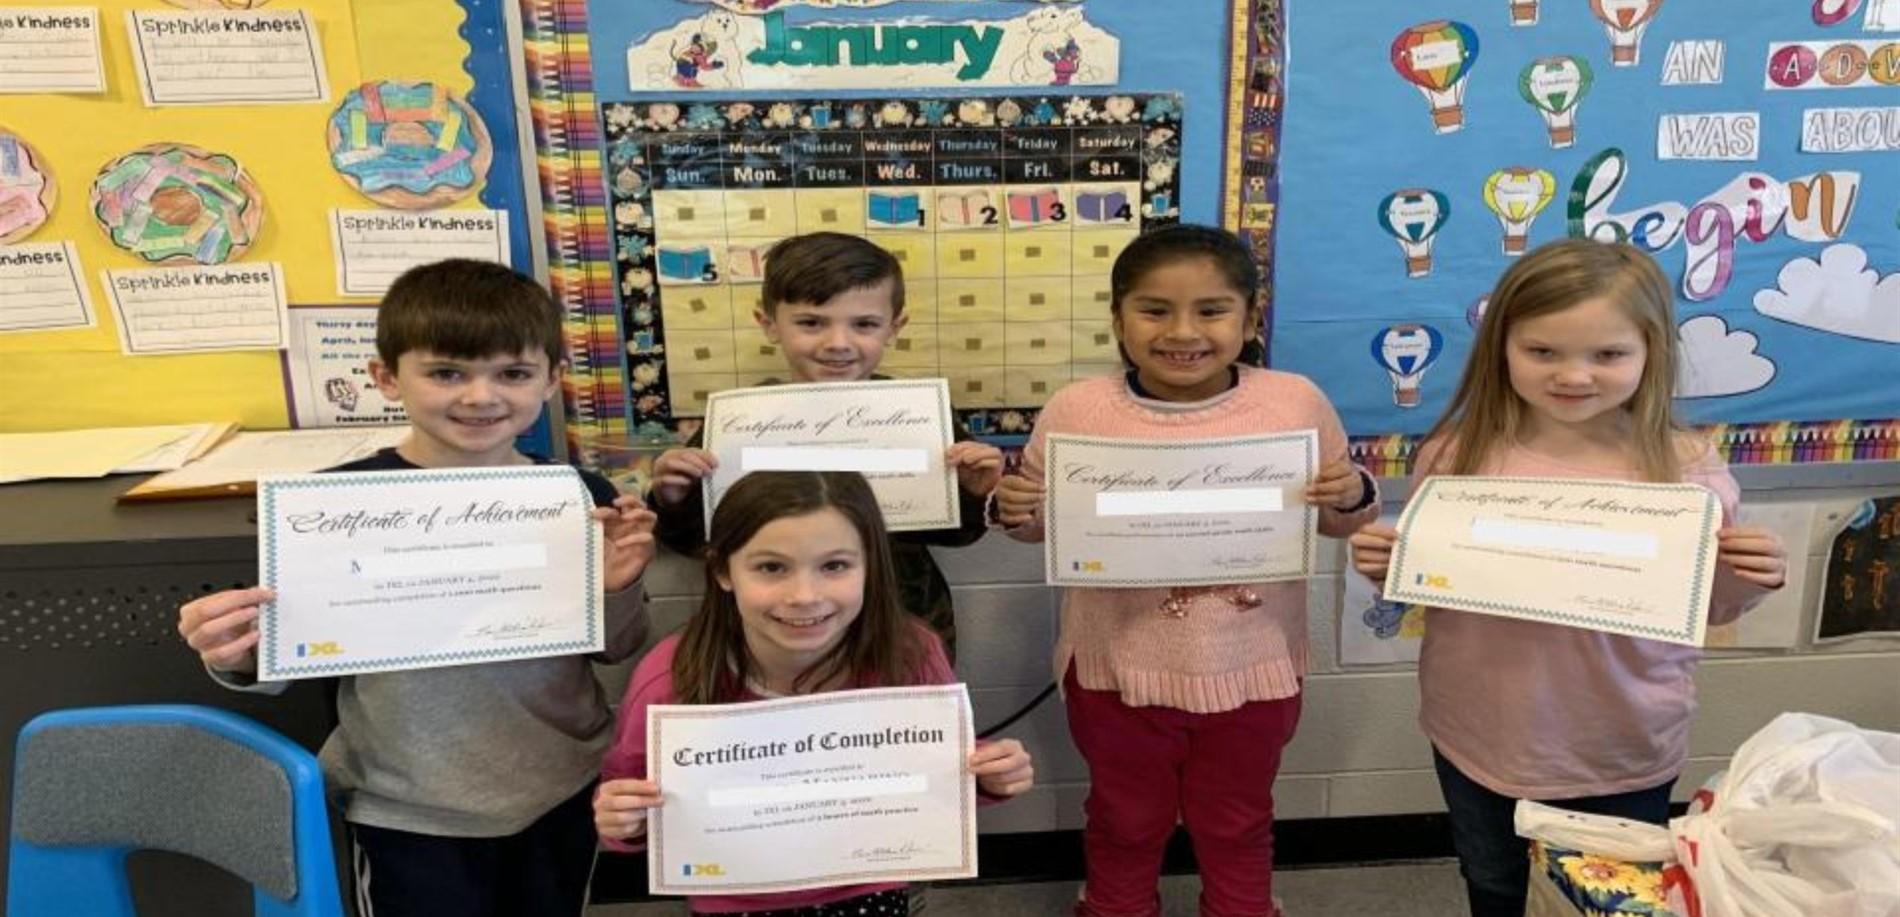 LDS Eagles soar high earning IXL Certificates